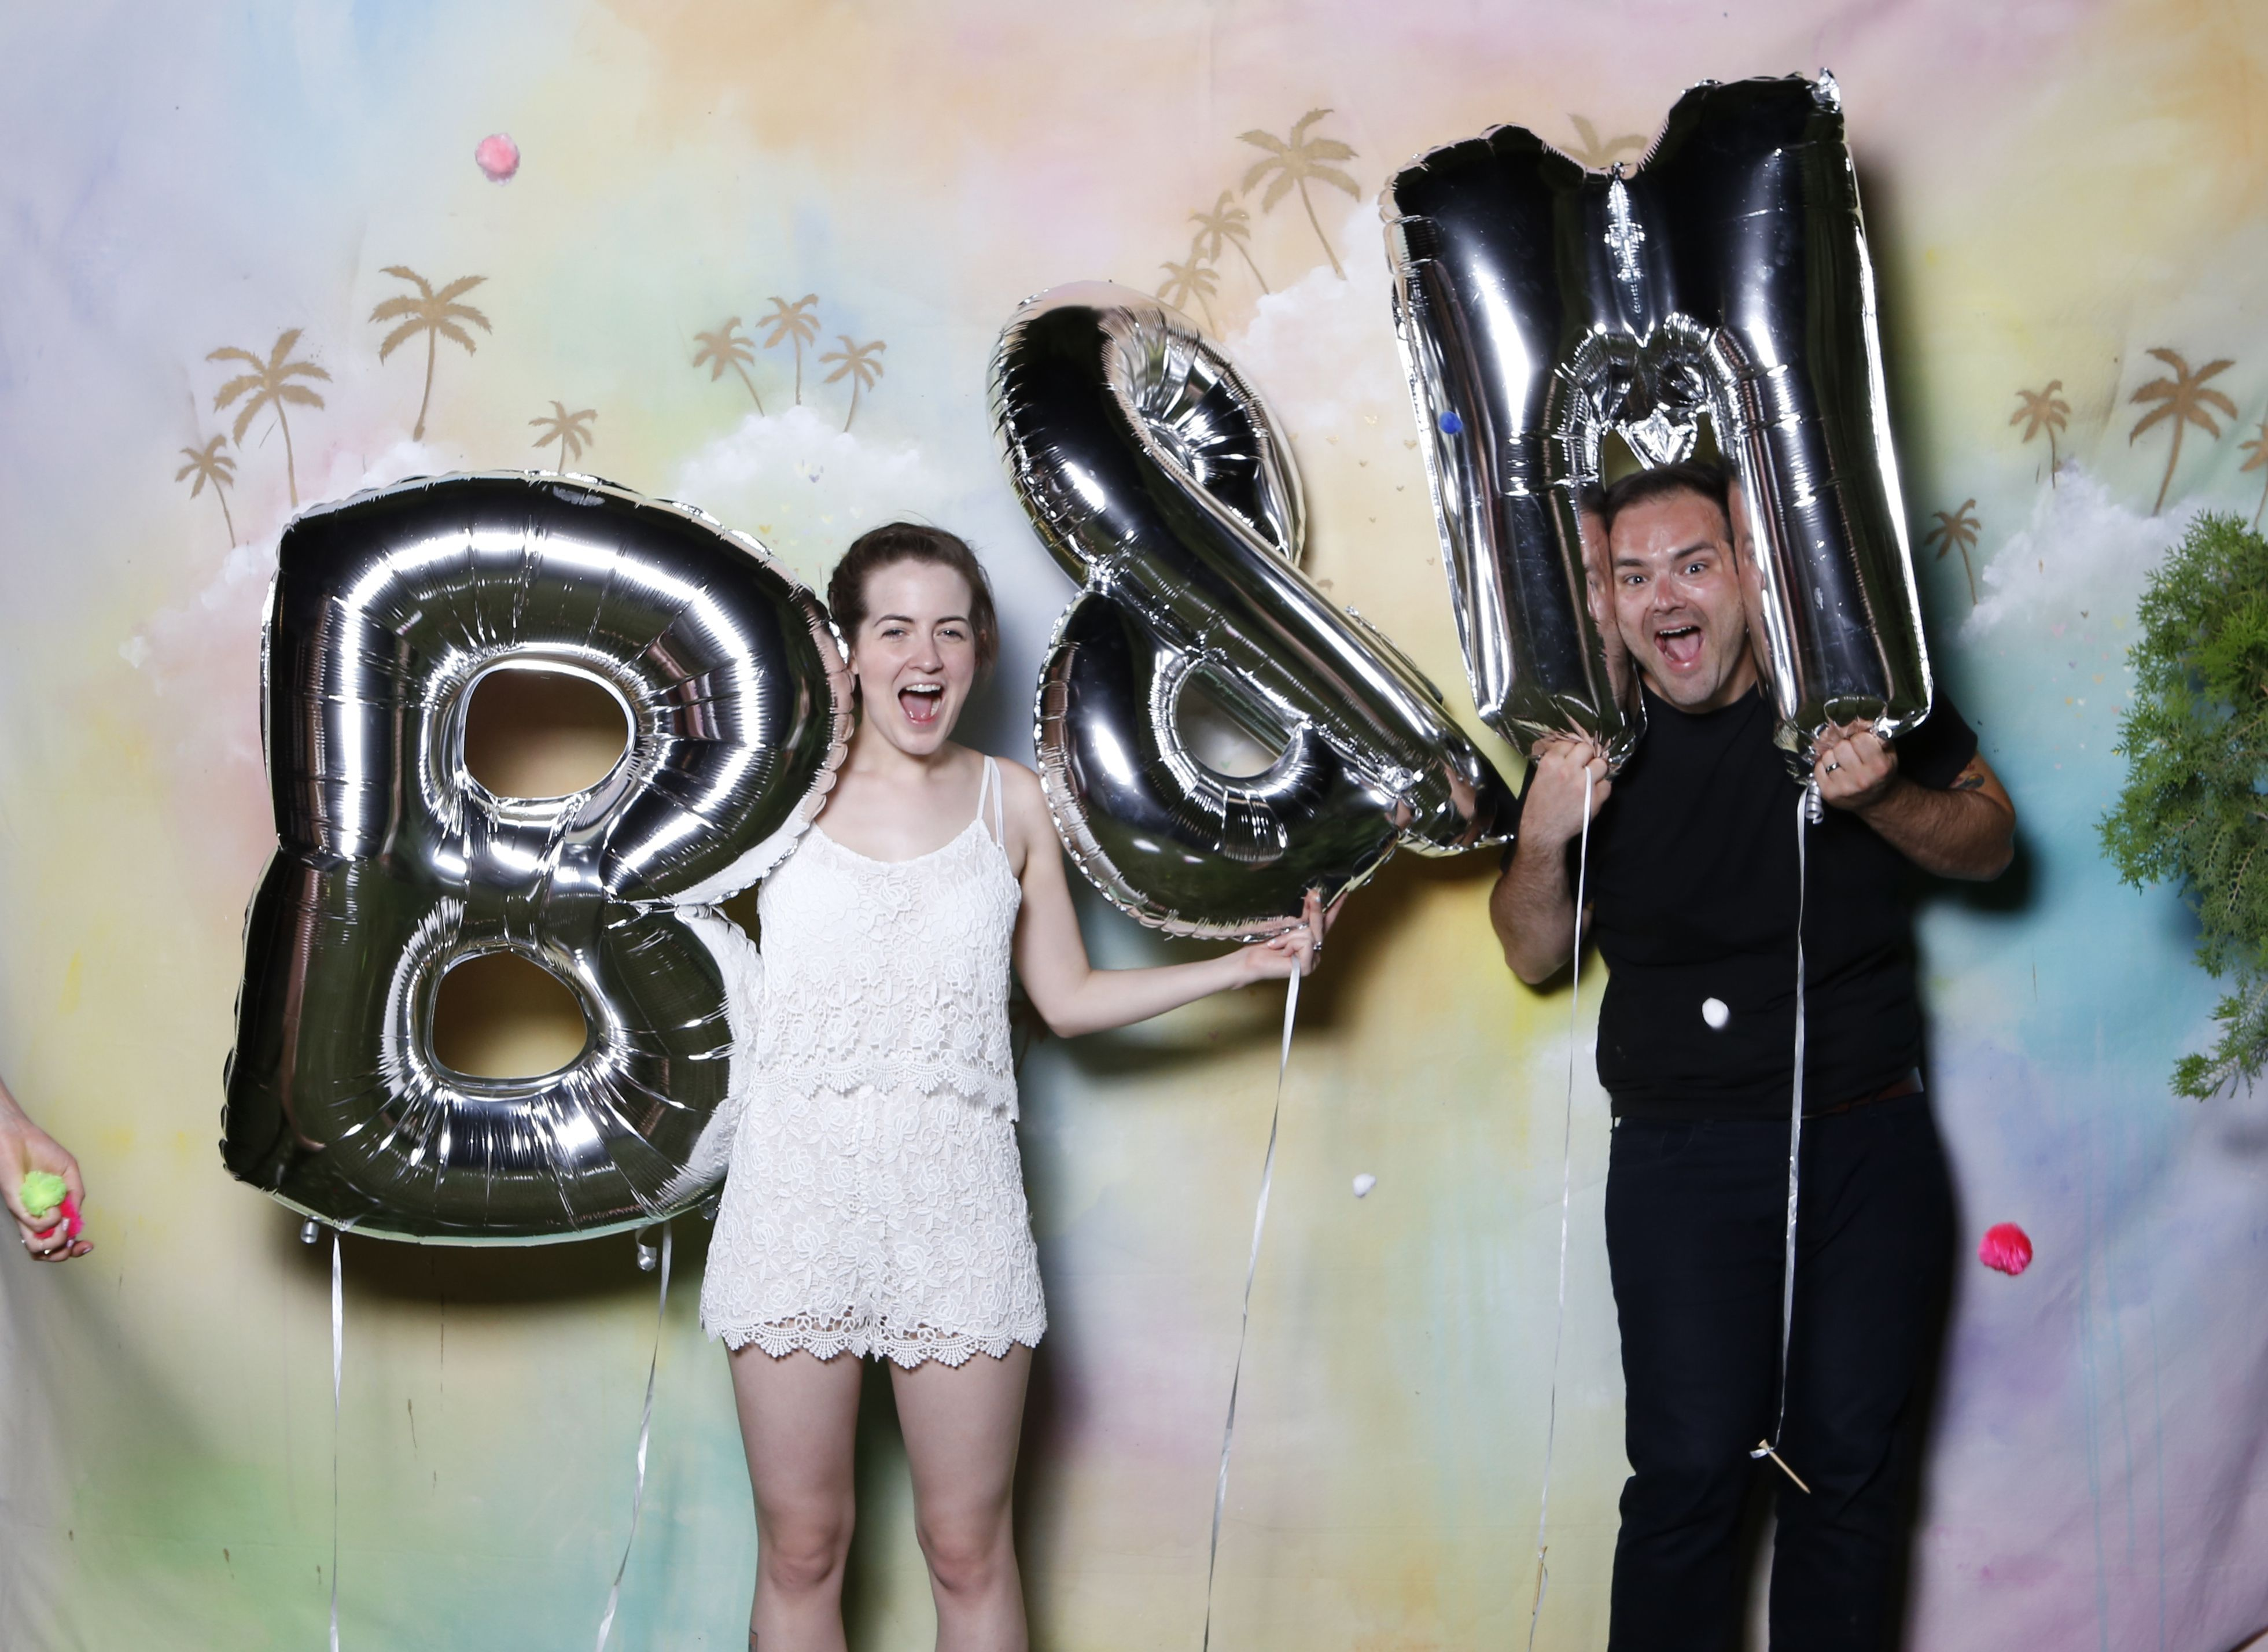 Handpainted Photobooth Backdrop by Melissa Wickham, Silver Letter Balloons, pom poms, palm trees.